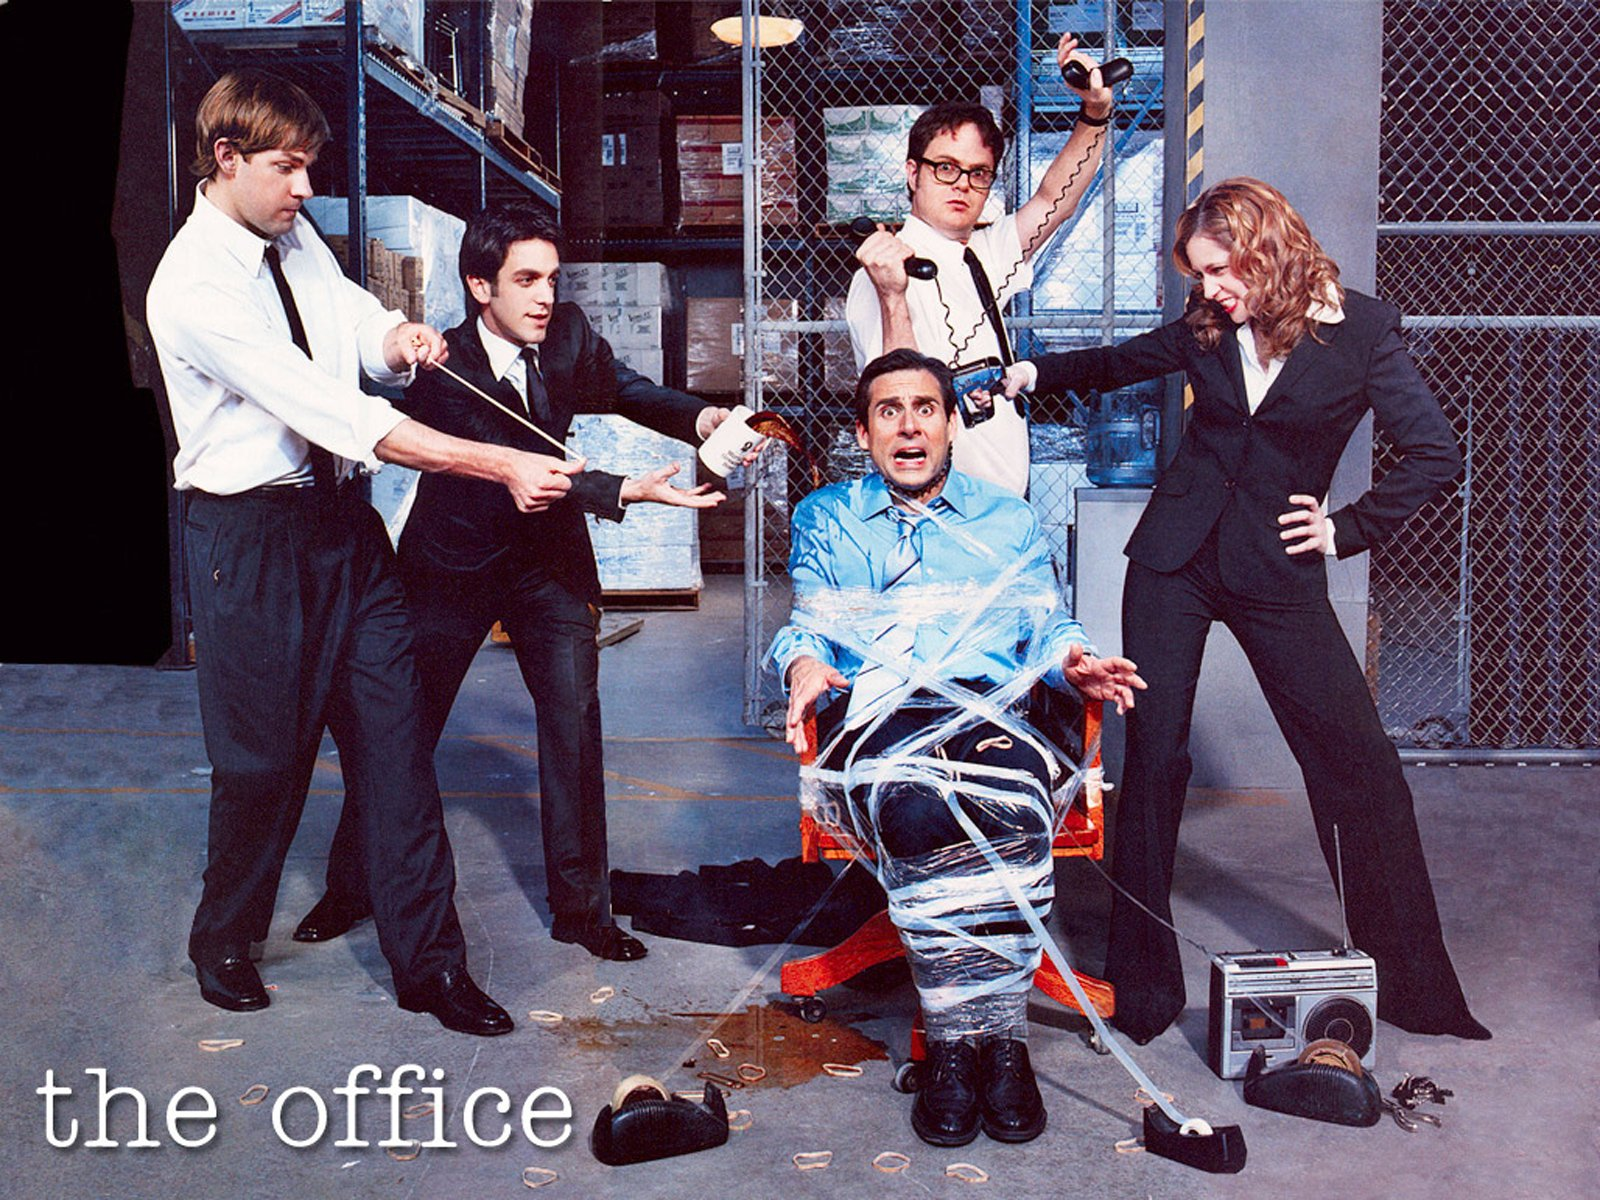 The Office US Wallpaper 2   1600 X 1200 stmednet 1600x1200